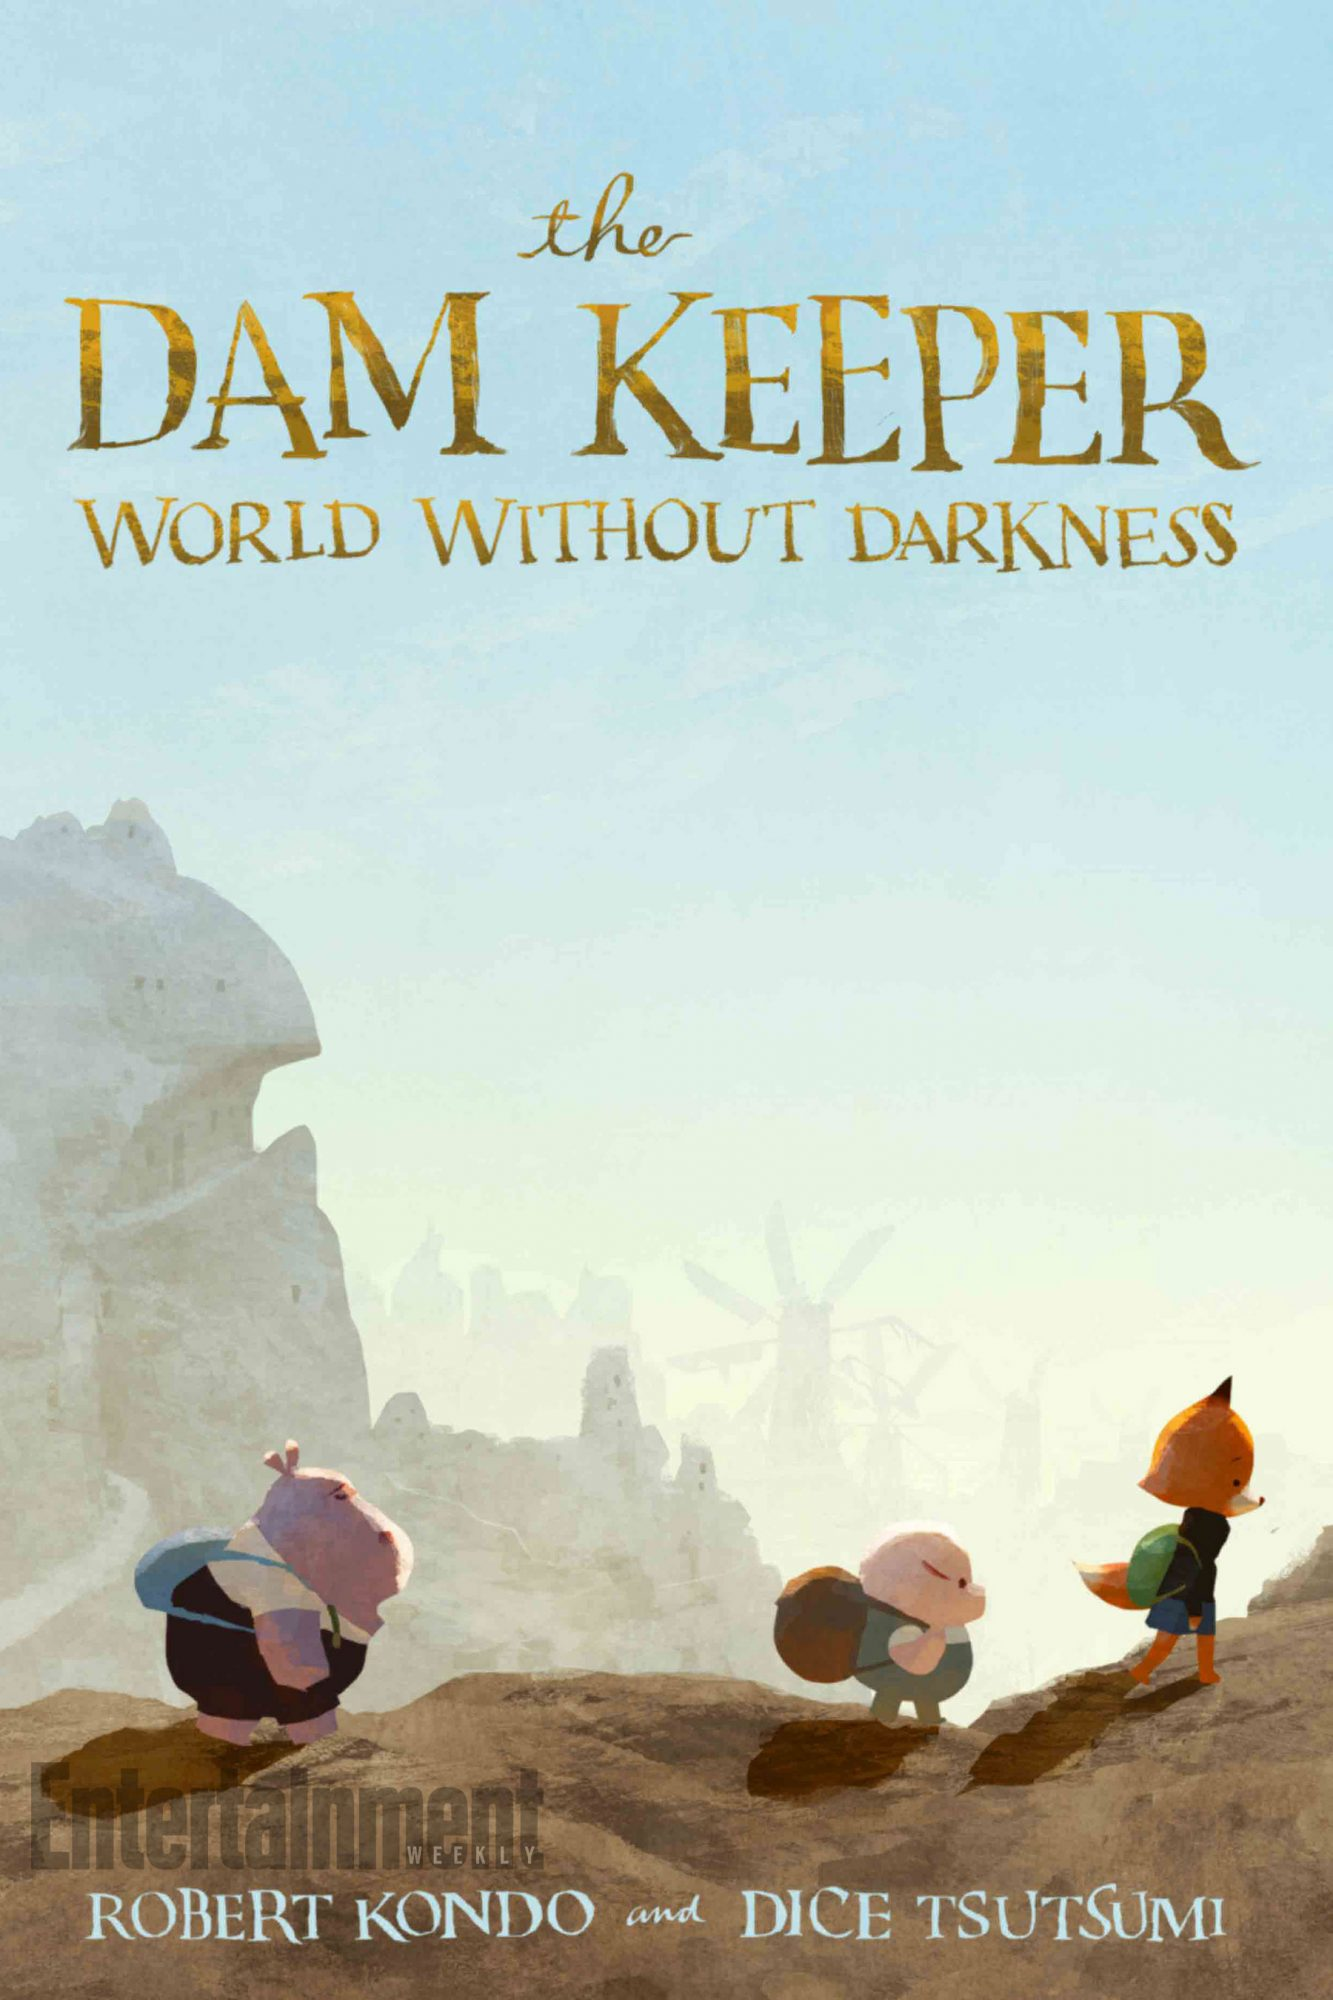 July 10, 2018                       The Dam Keeper: World Without Darkness by Robert Kondo and Dice Tsutsumi